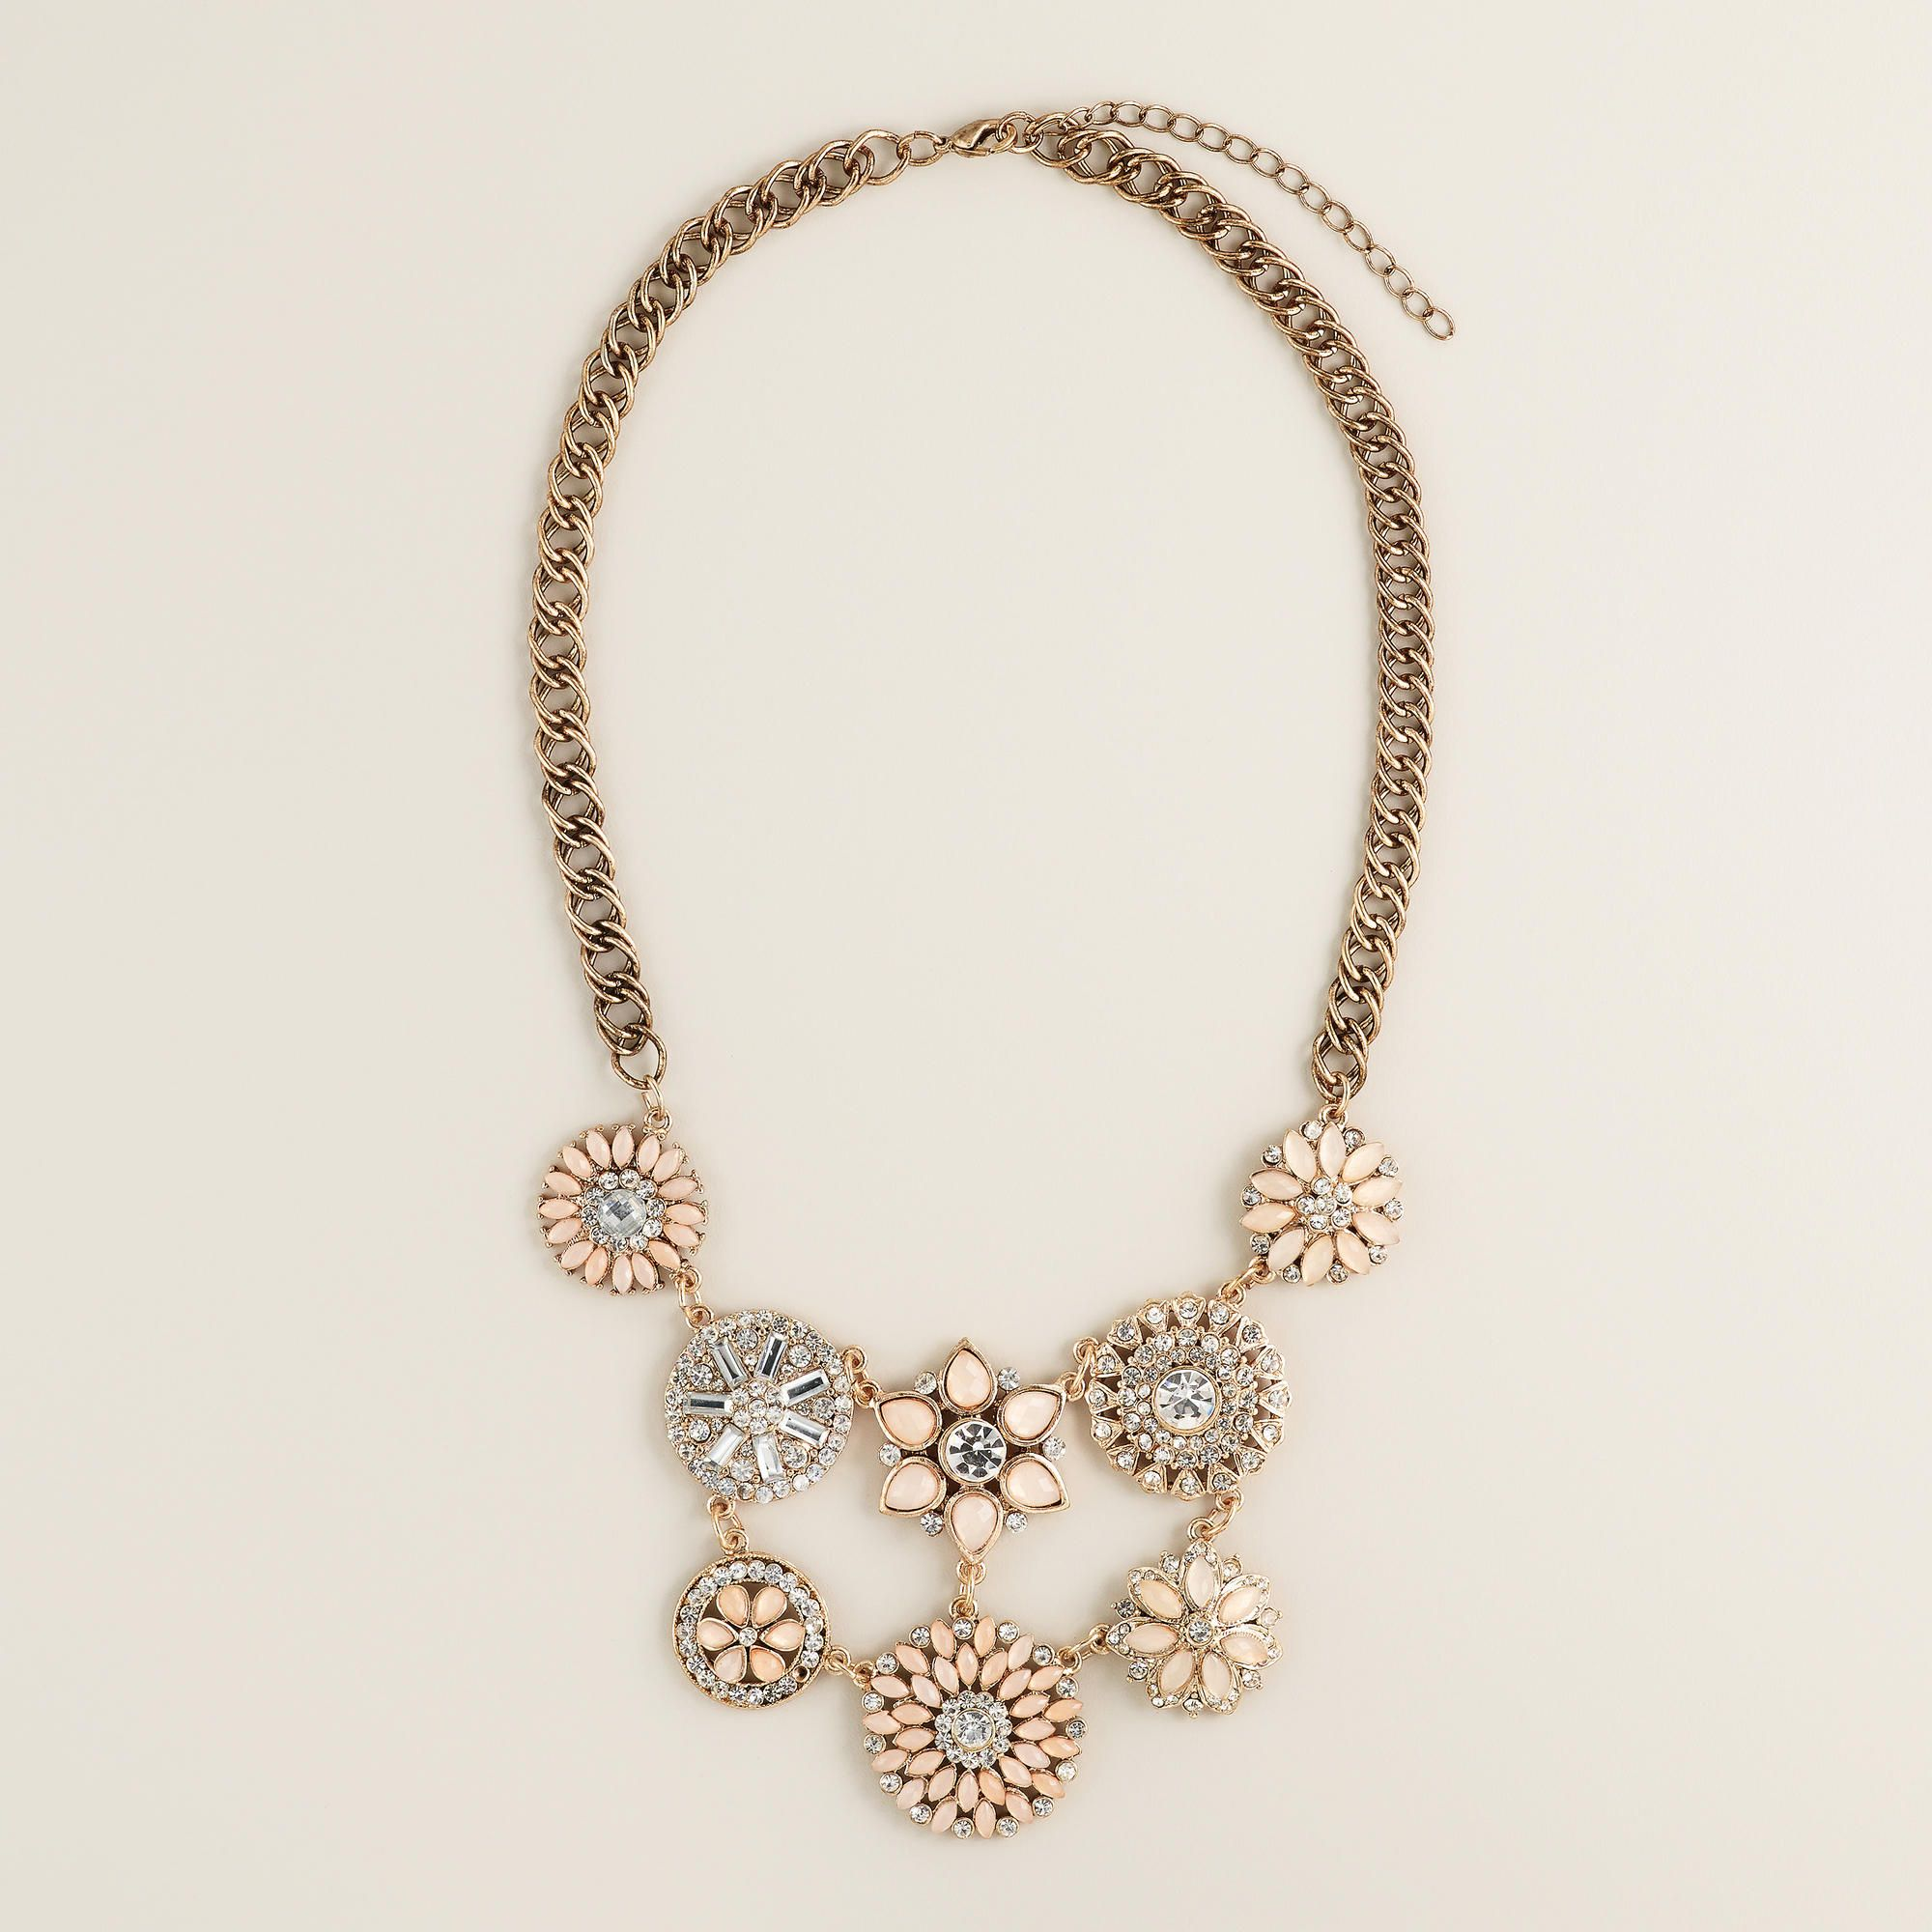 blush baublebar layered modesens product necklace bubblebeam collar